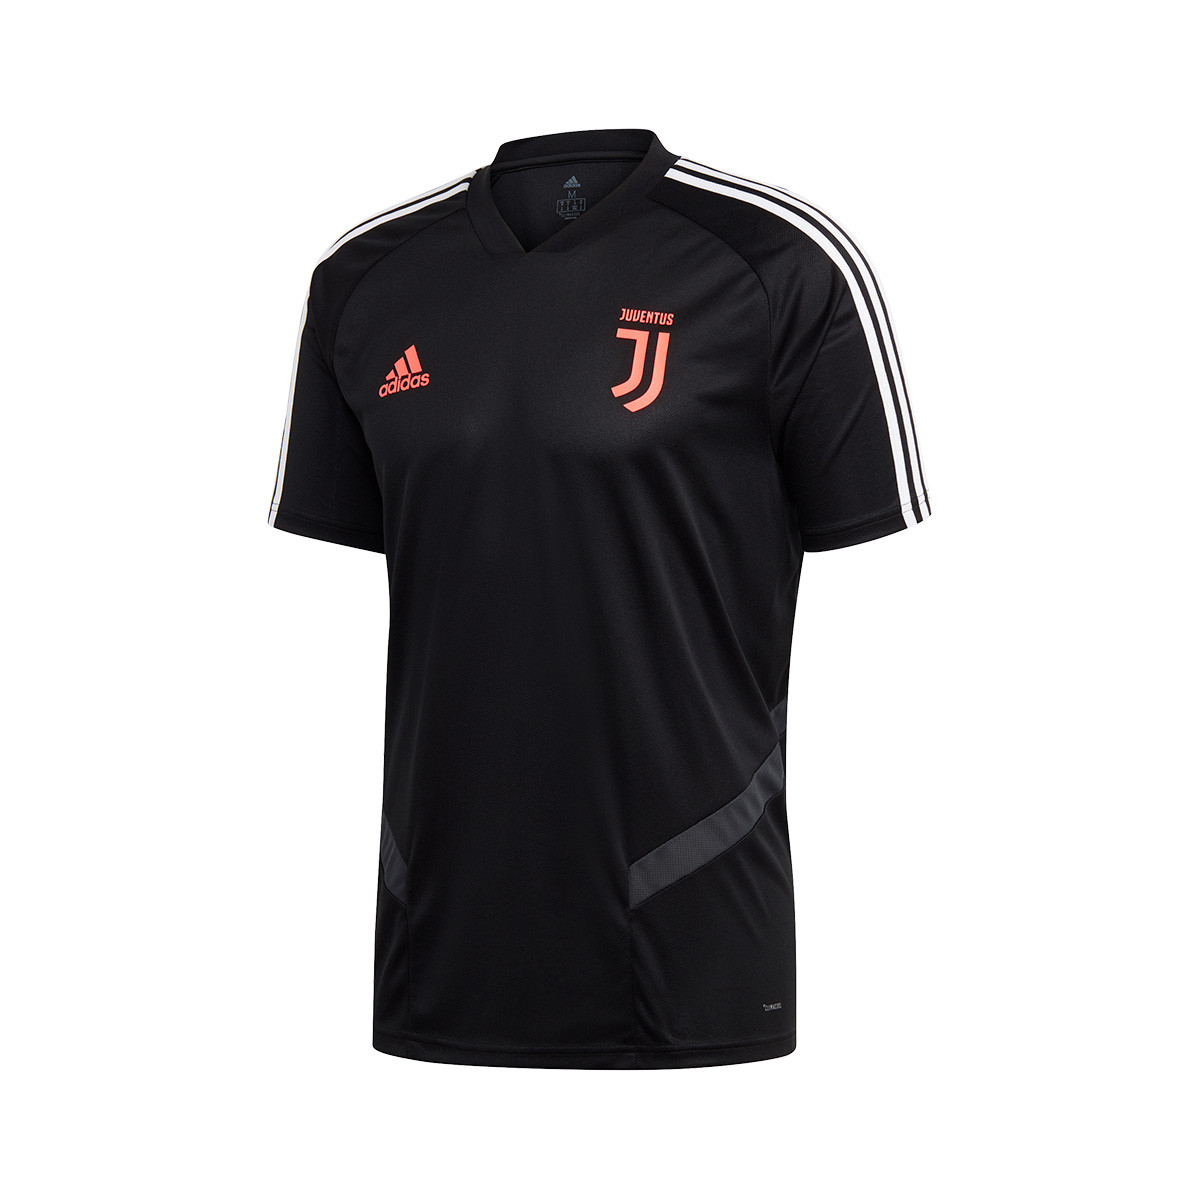 jersey adidas juventus training 2019 2020 black dark grey football store futbol emotion adidas juventus training 2019 2020 jersey